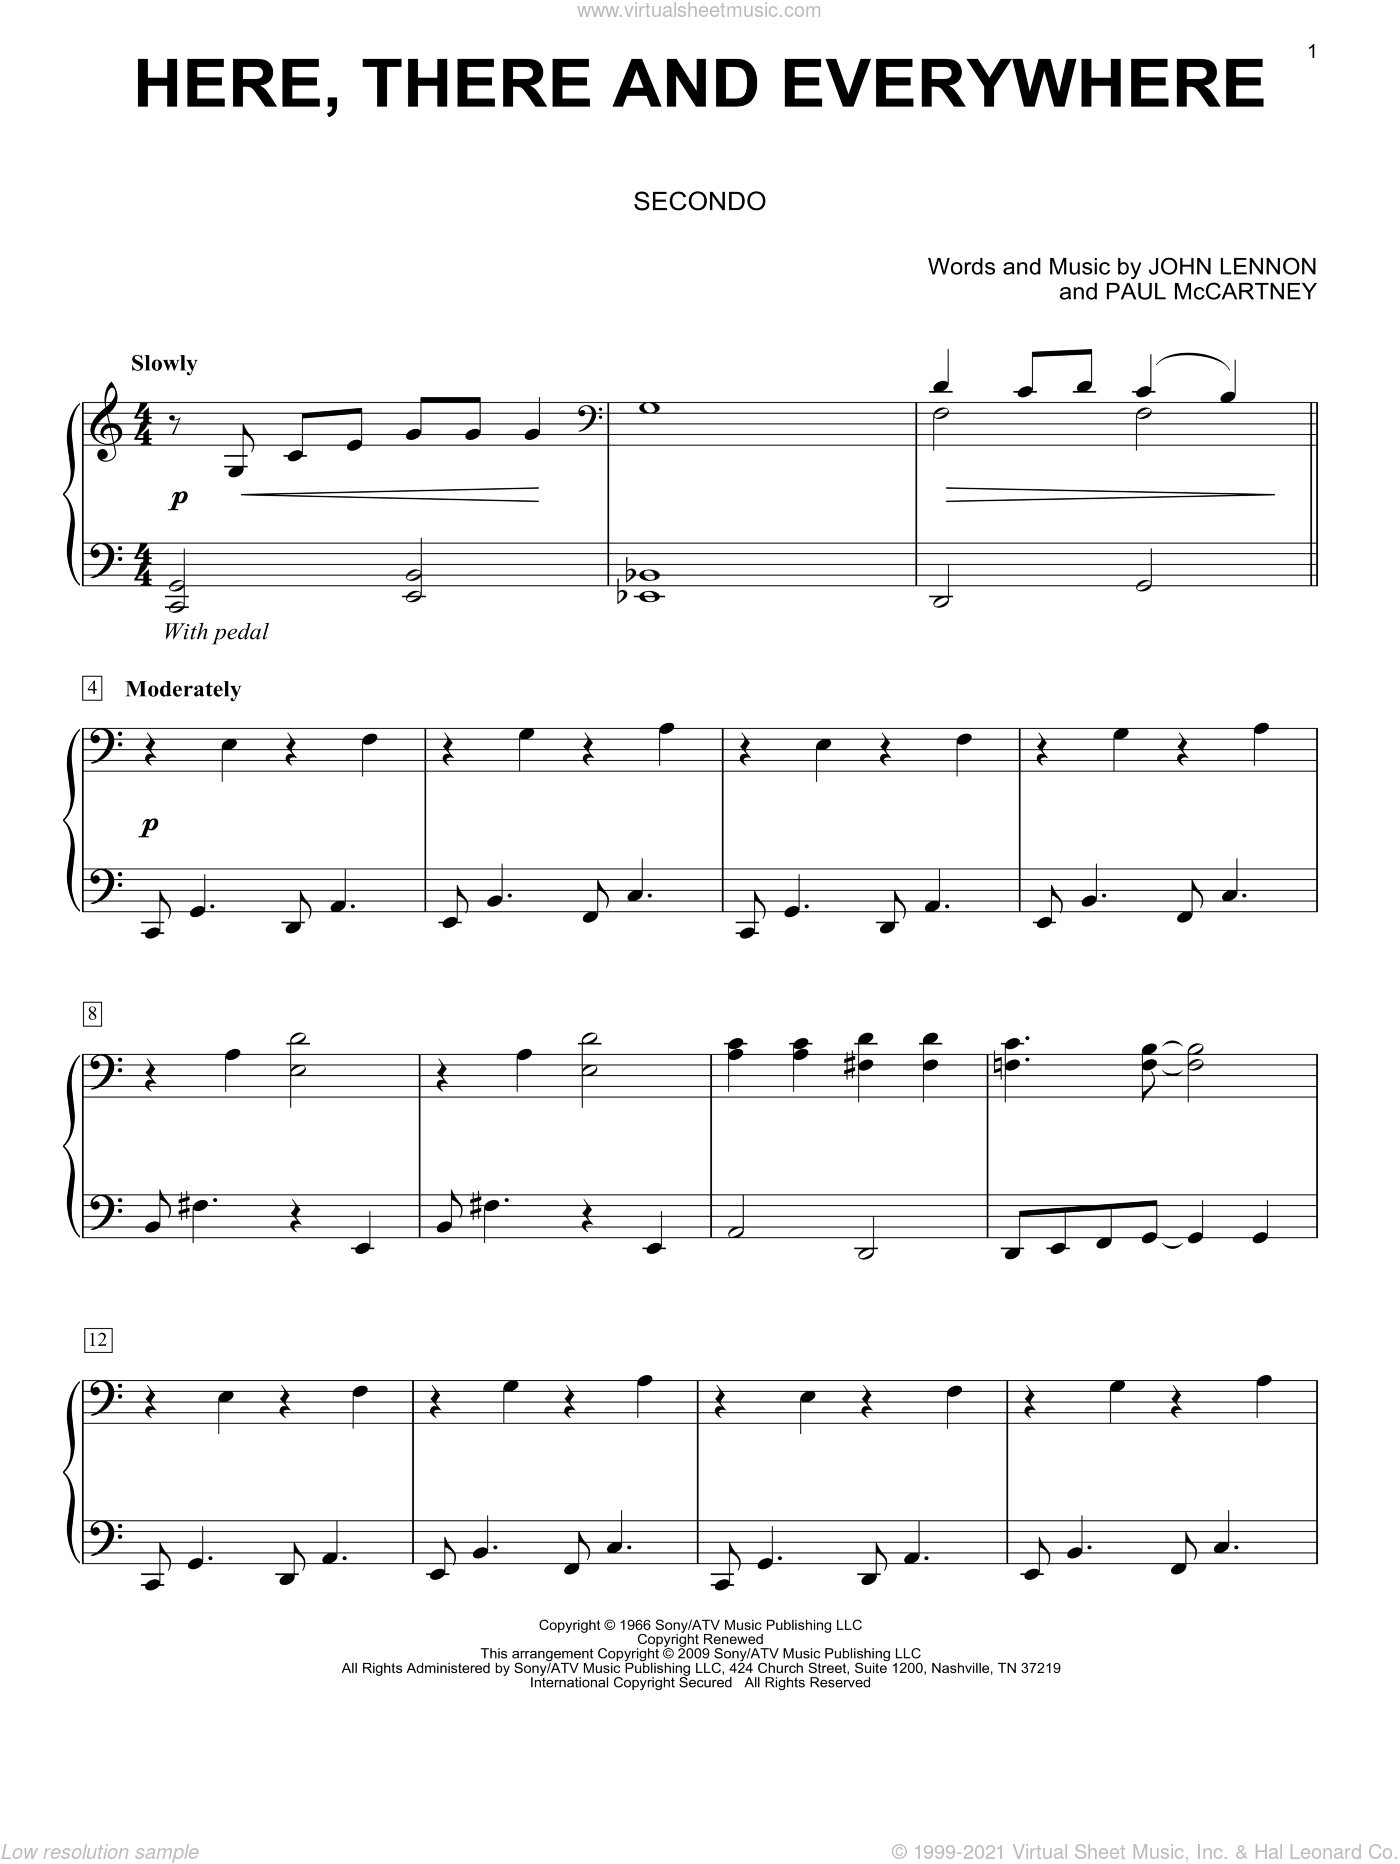 Here, There And Everywhere sheet music for piano four hands by The Beatles, John Lennon and Paul McCartney, wedding score, intermediate skill level